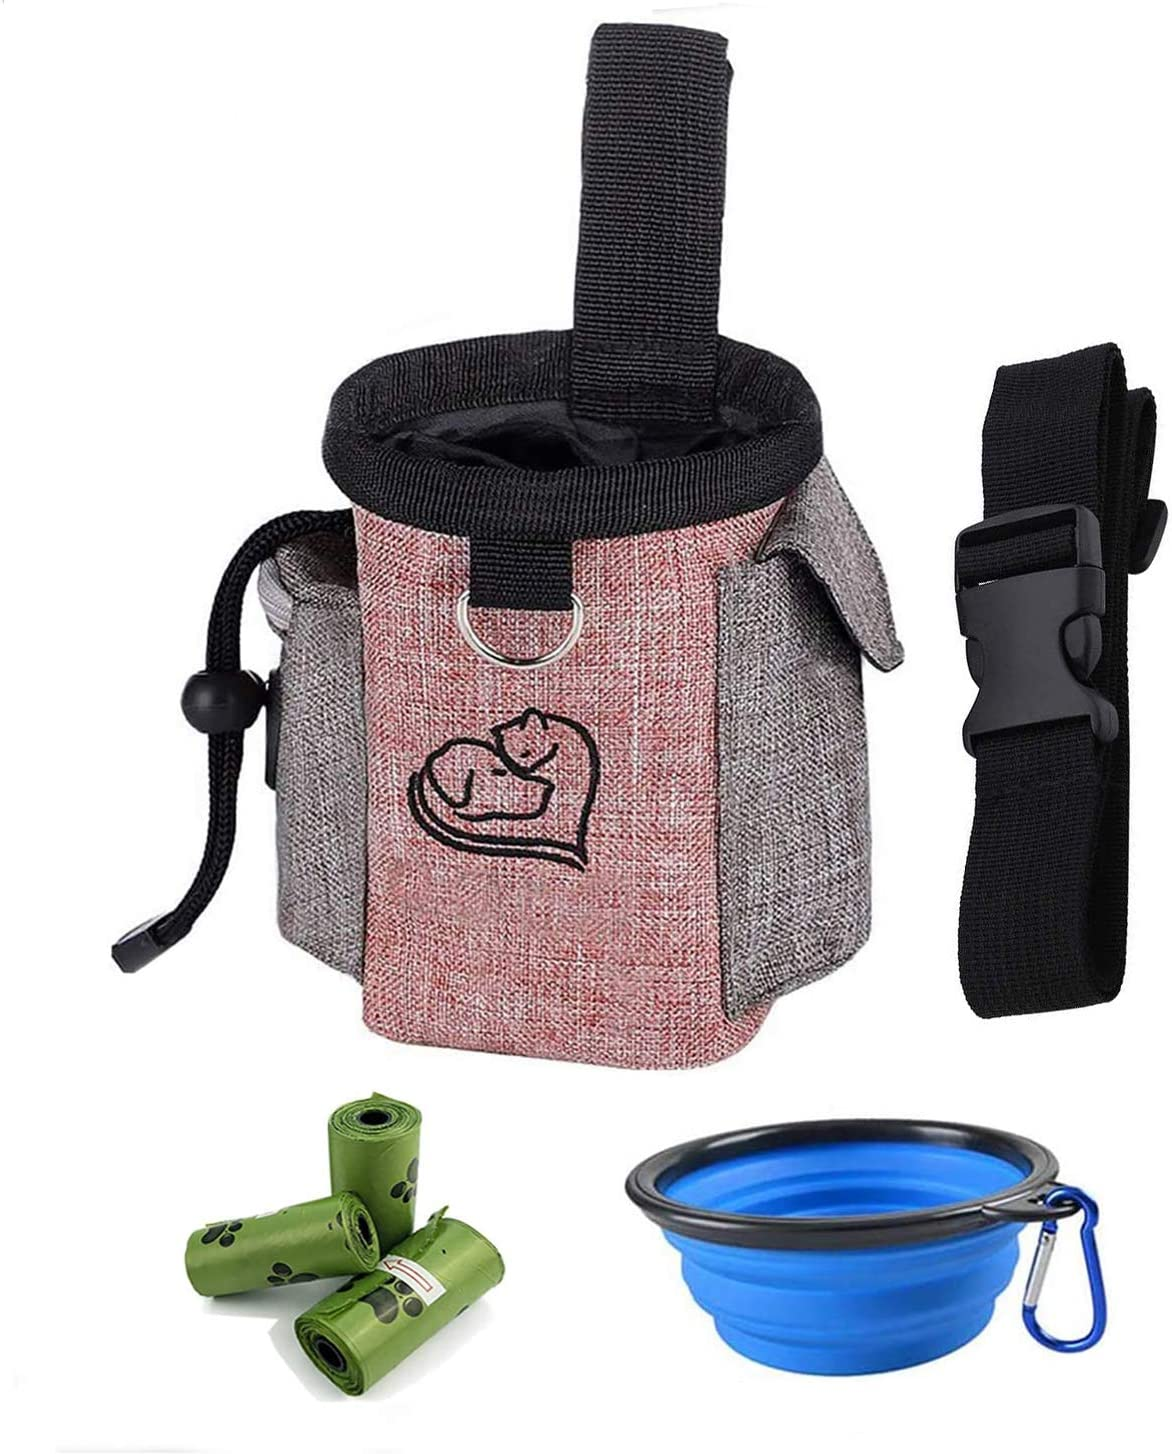 Dog Treat Bag - Training Pouch for Dogs with Collapsible Food Bowl - Pet Training Bag with Adjustable Waist Strap and 3 Rolls Poop Bags - Food Snack Kibble Storage Holder Walking with Dogs